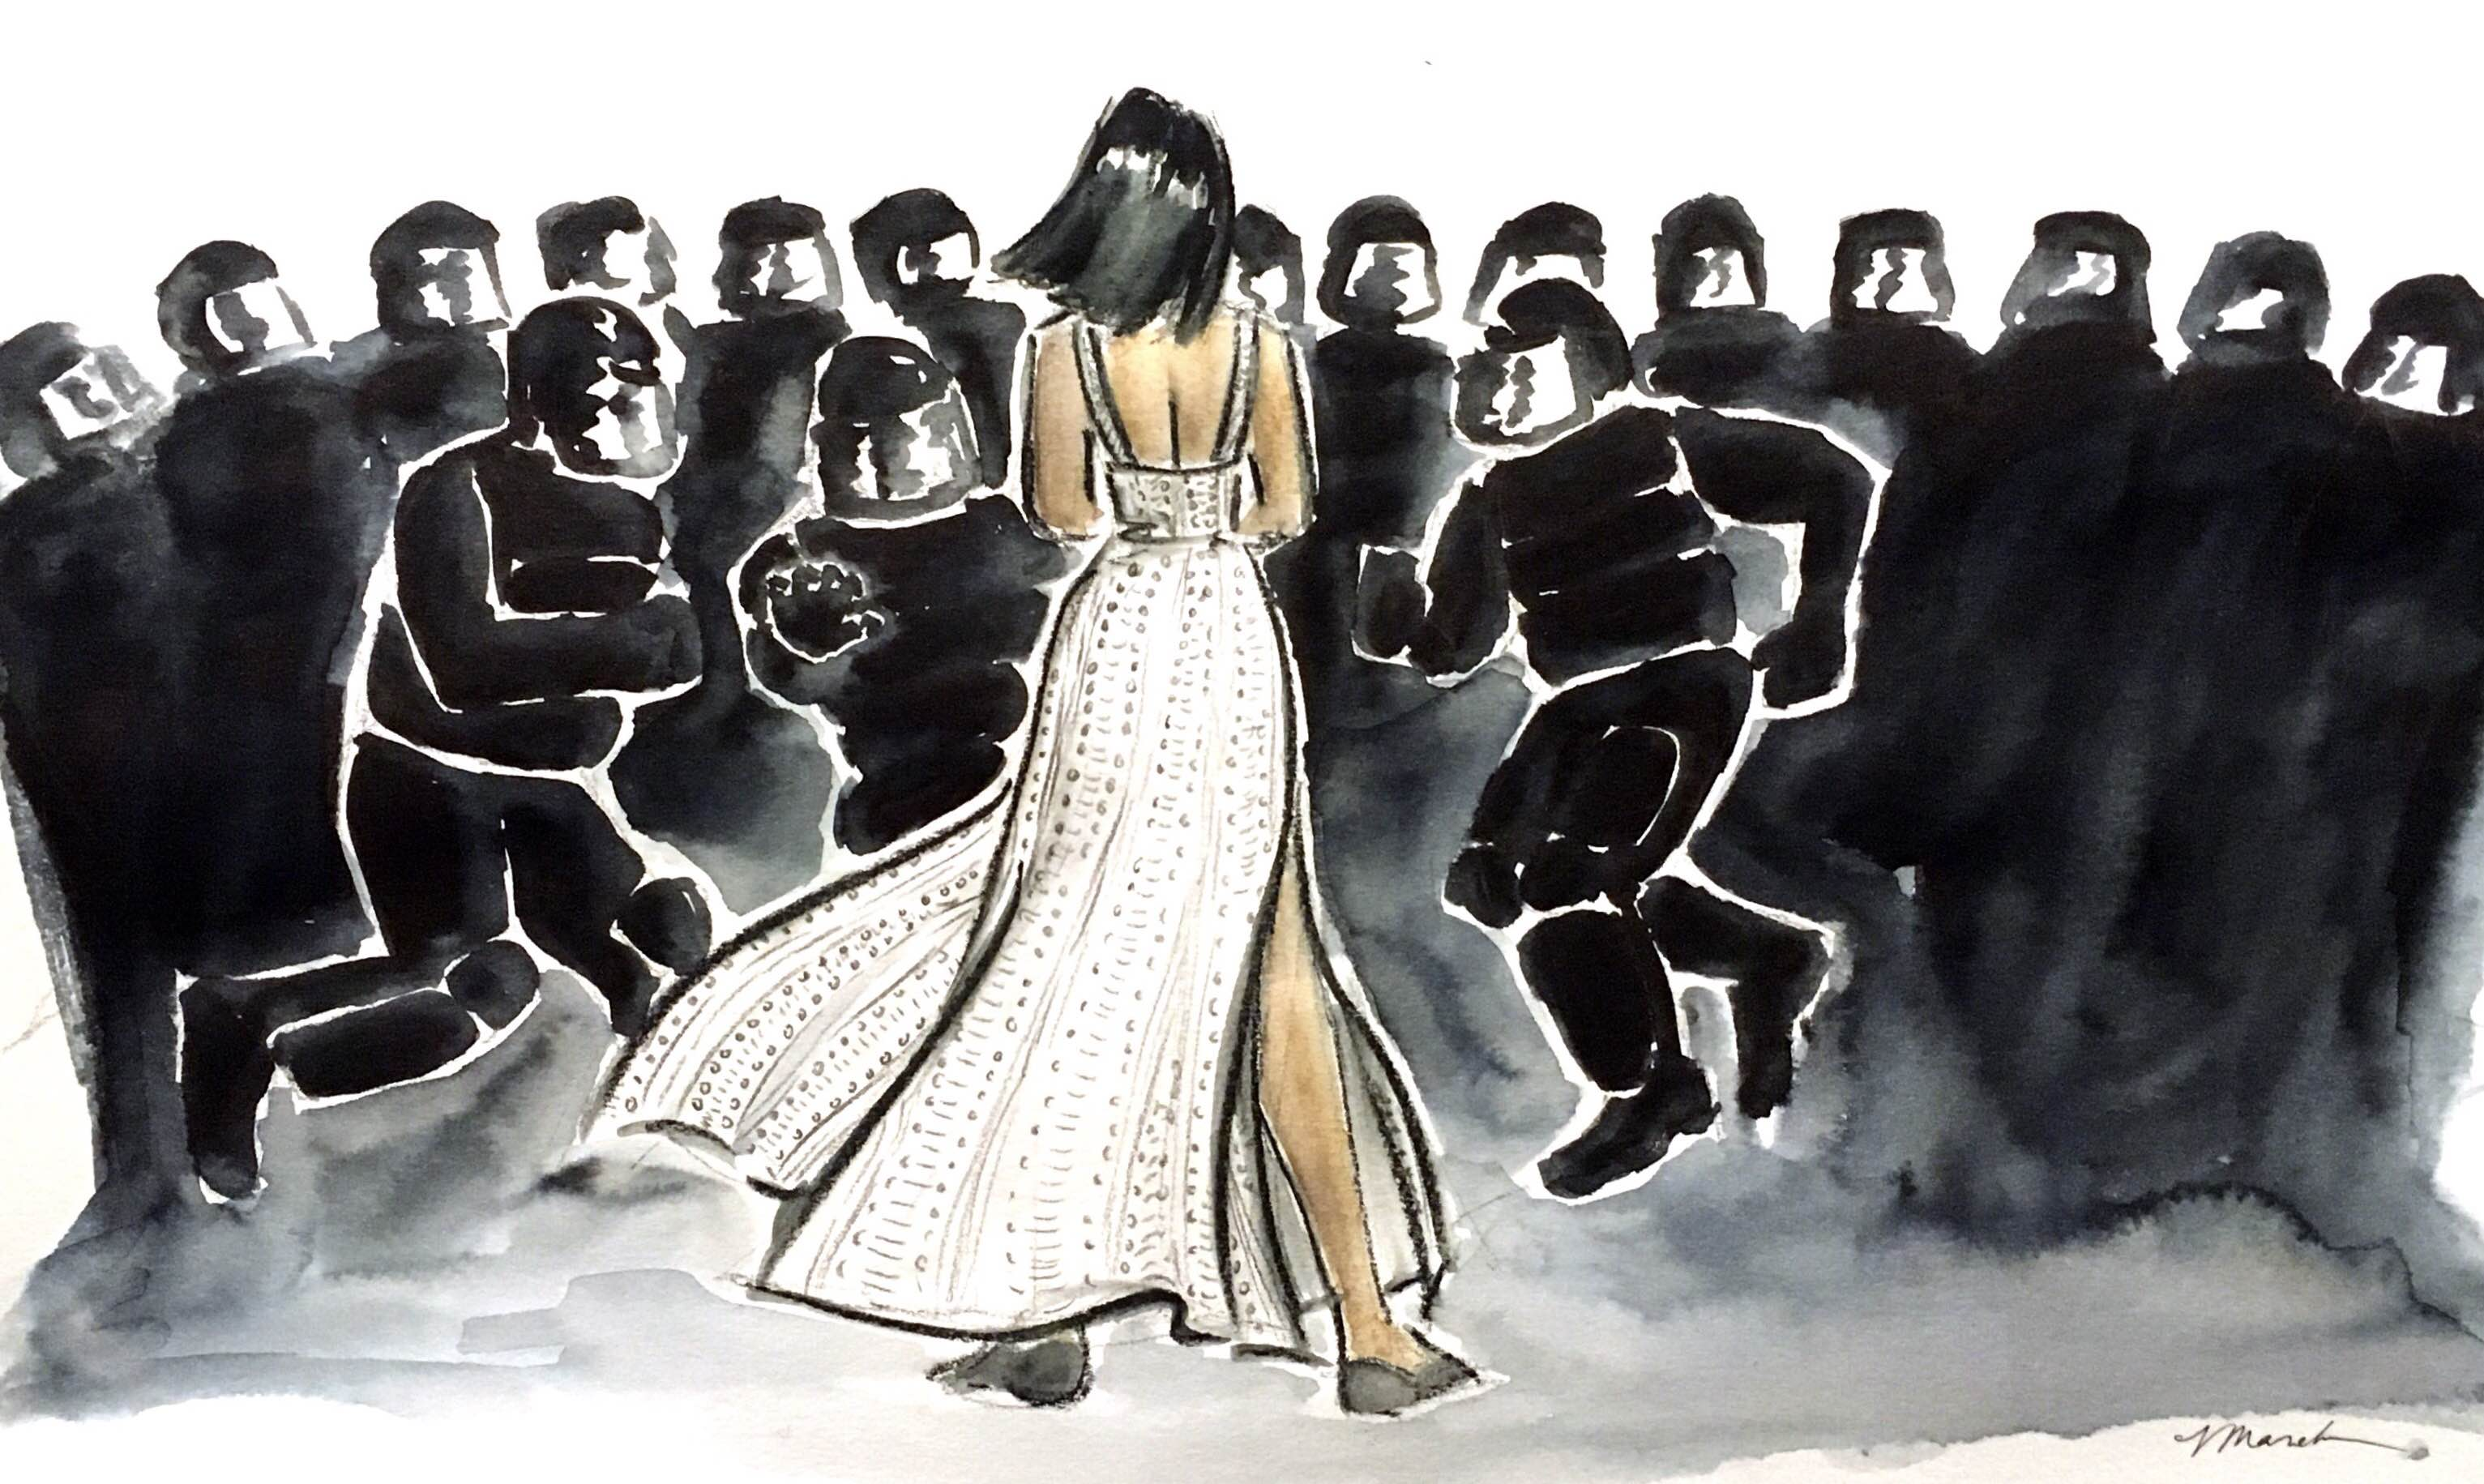 Protestor Ieshia Evans and the officers of the Baton Rouge, Louisiana police department, as illustrated by Veronica Marché Jamison.